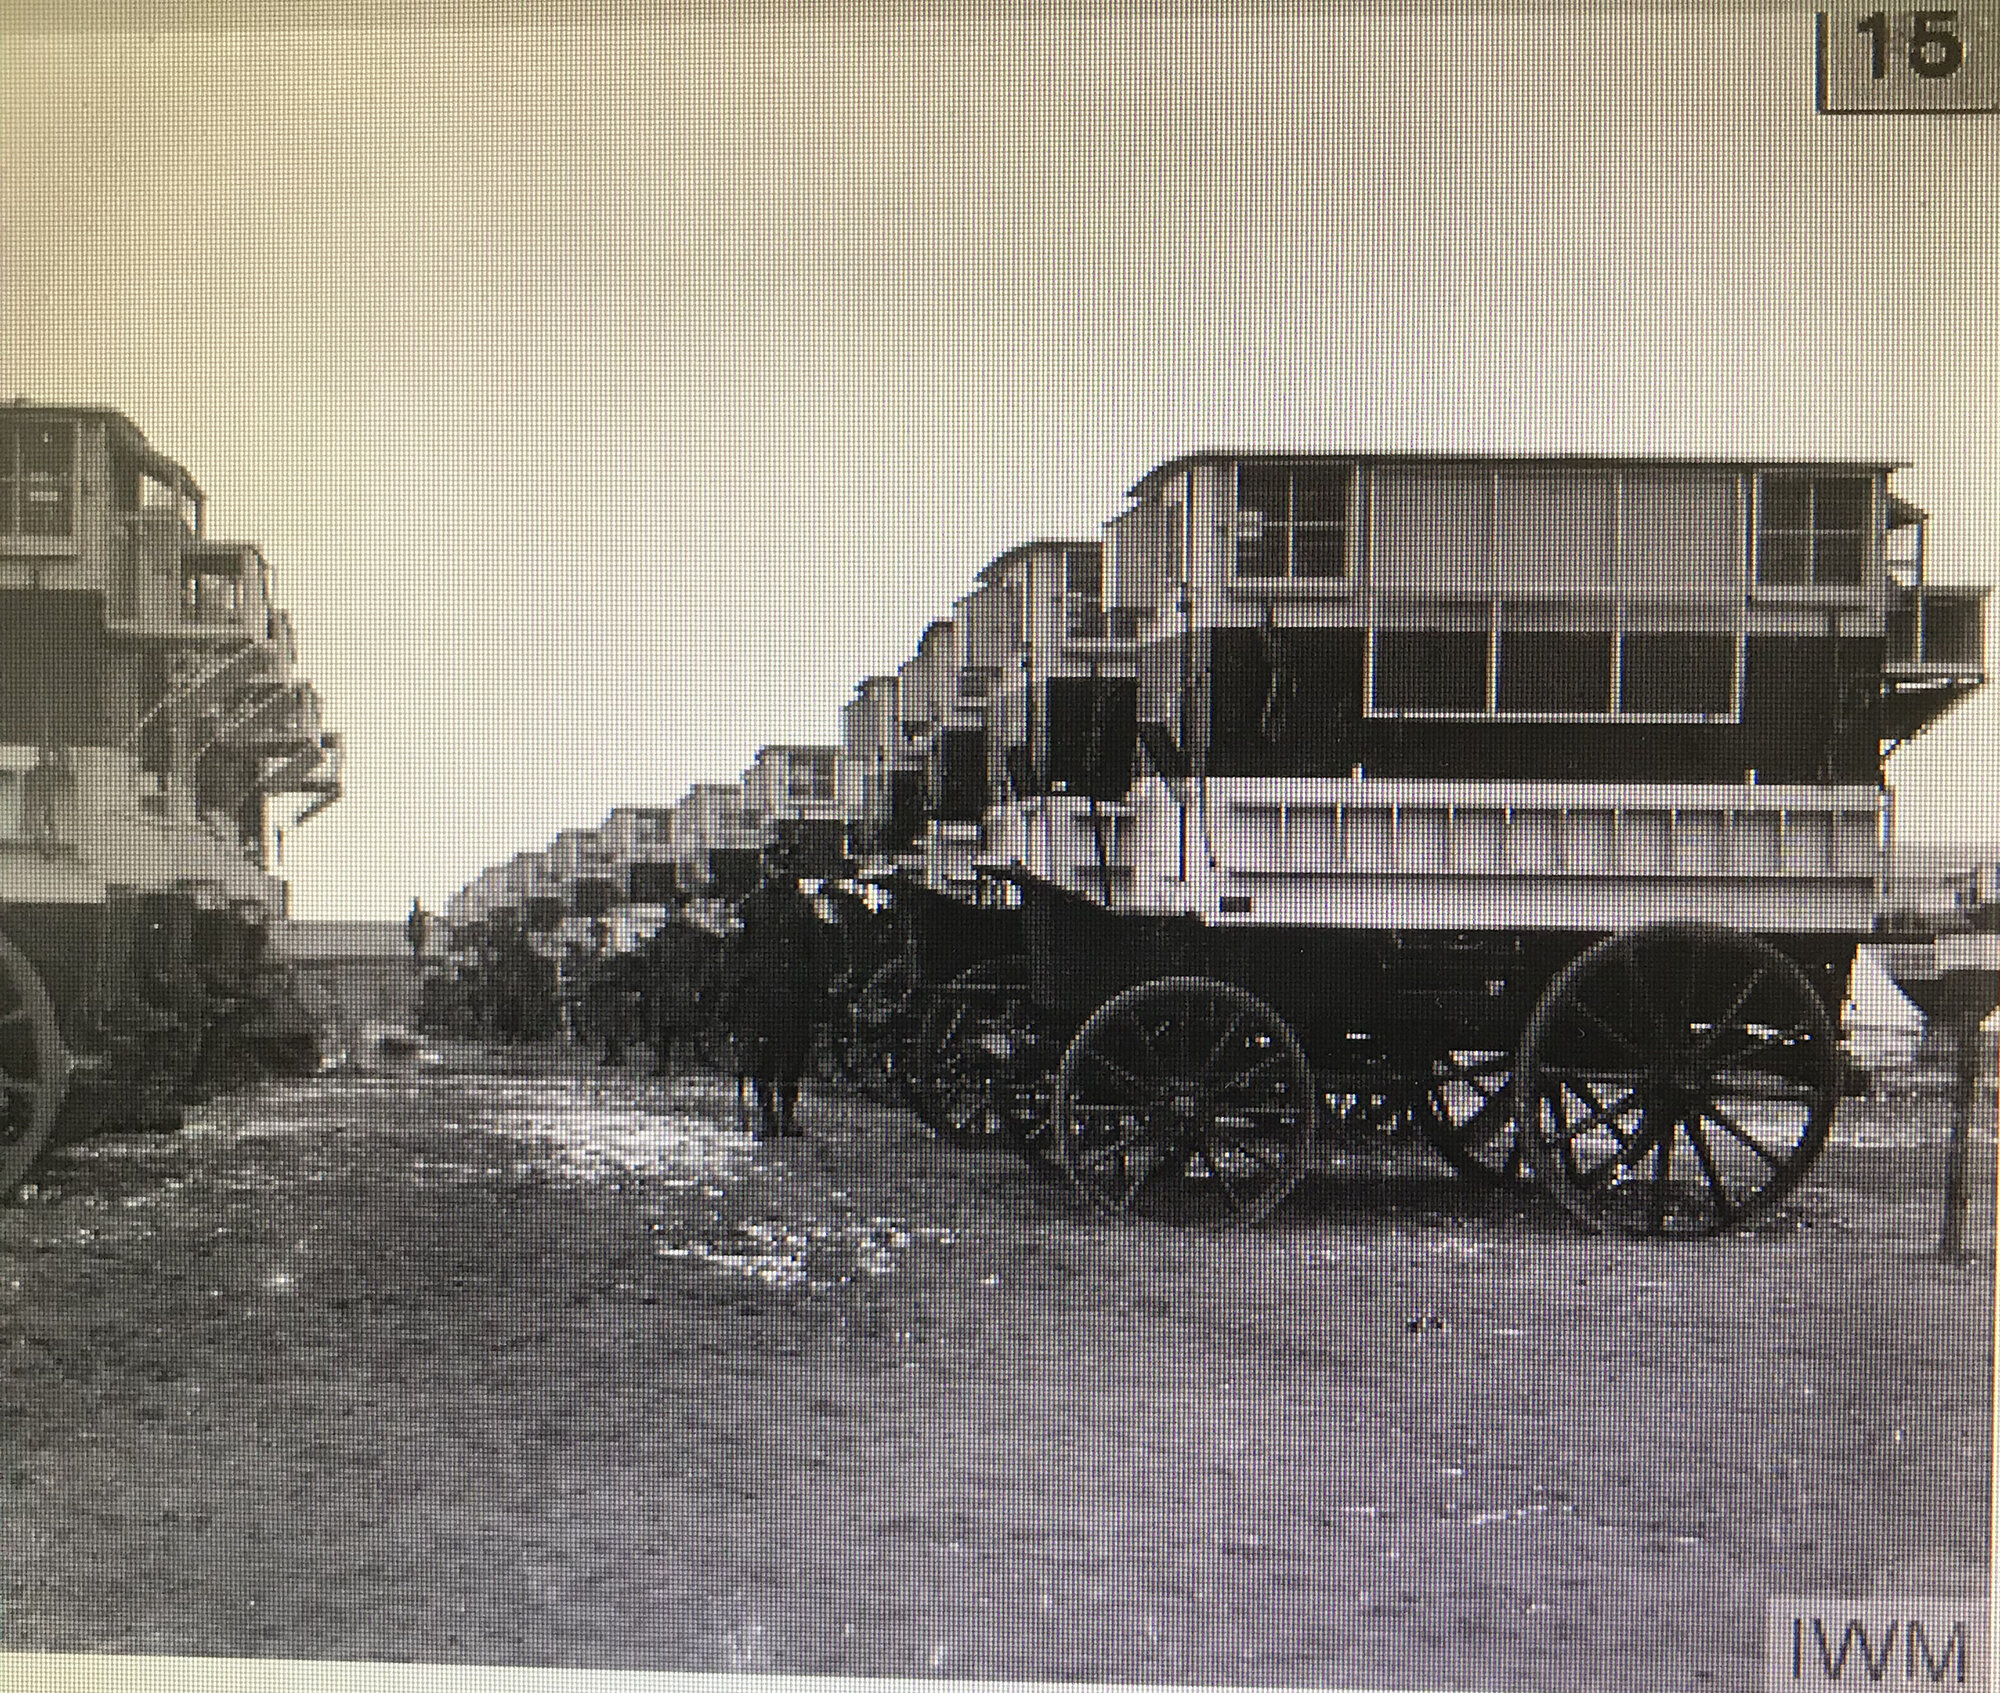 WWI Mobile Pigeon Coops photos from Imperial War Museum.